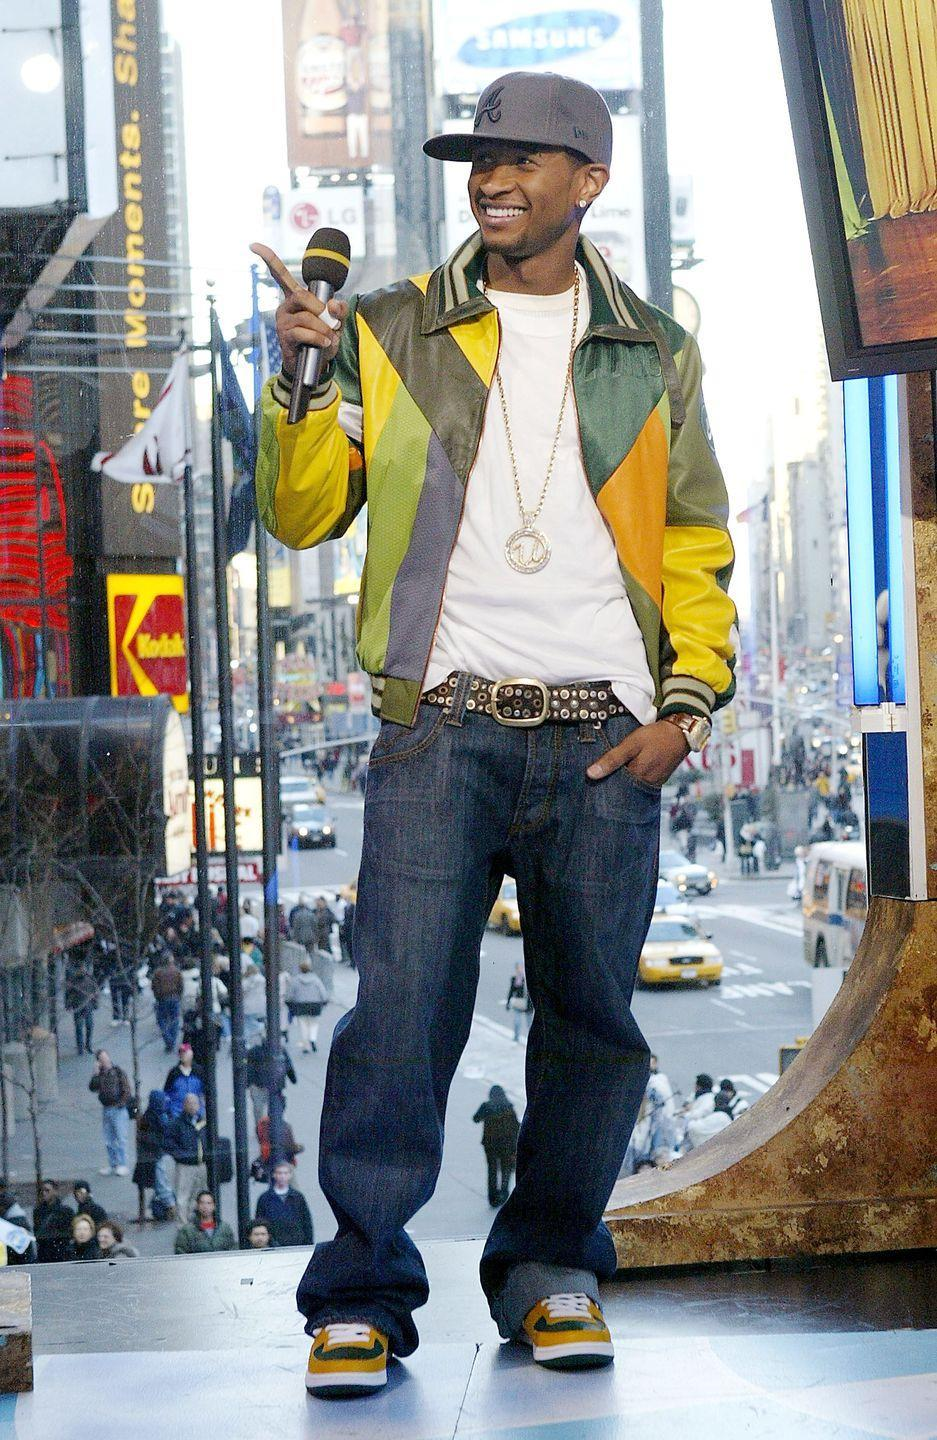 <p>No one was safe from the dreaded fashion choices of the mid-2000s. Not even Usher. Why did he have to go and match his shoes to his jacket?</p>